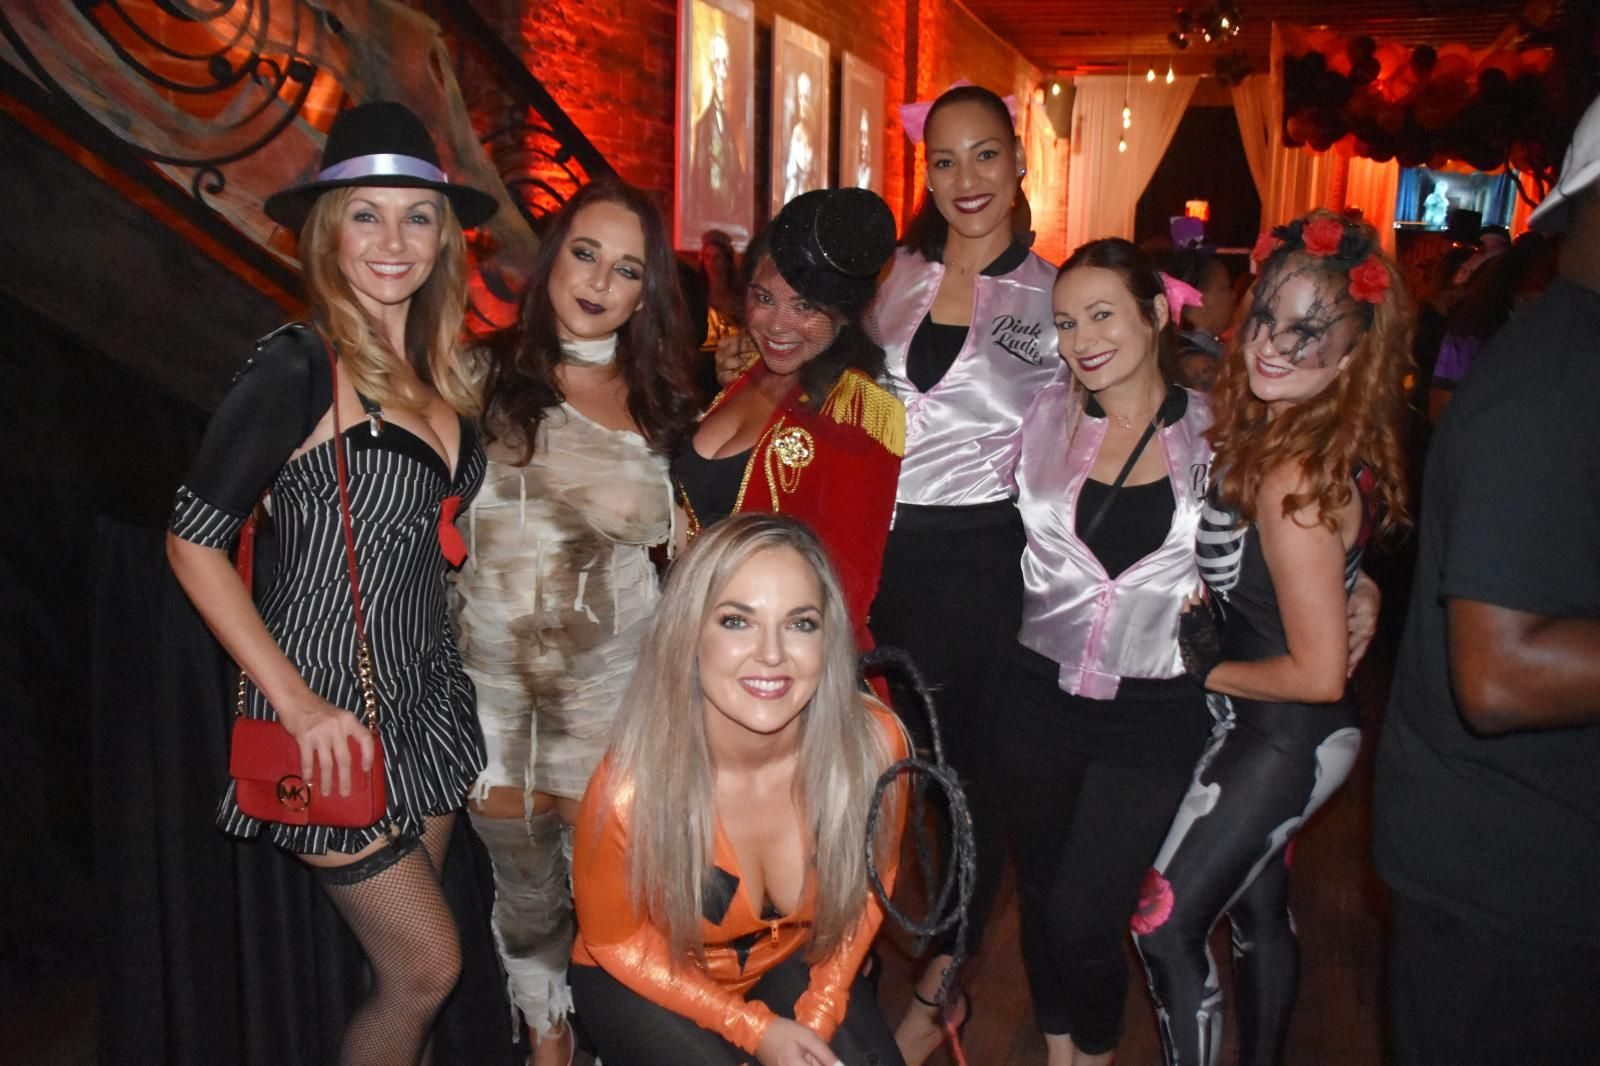 2018 11-19 NOVAWEEN 12 Official Photos by Ann Coffman - lovely ladies